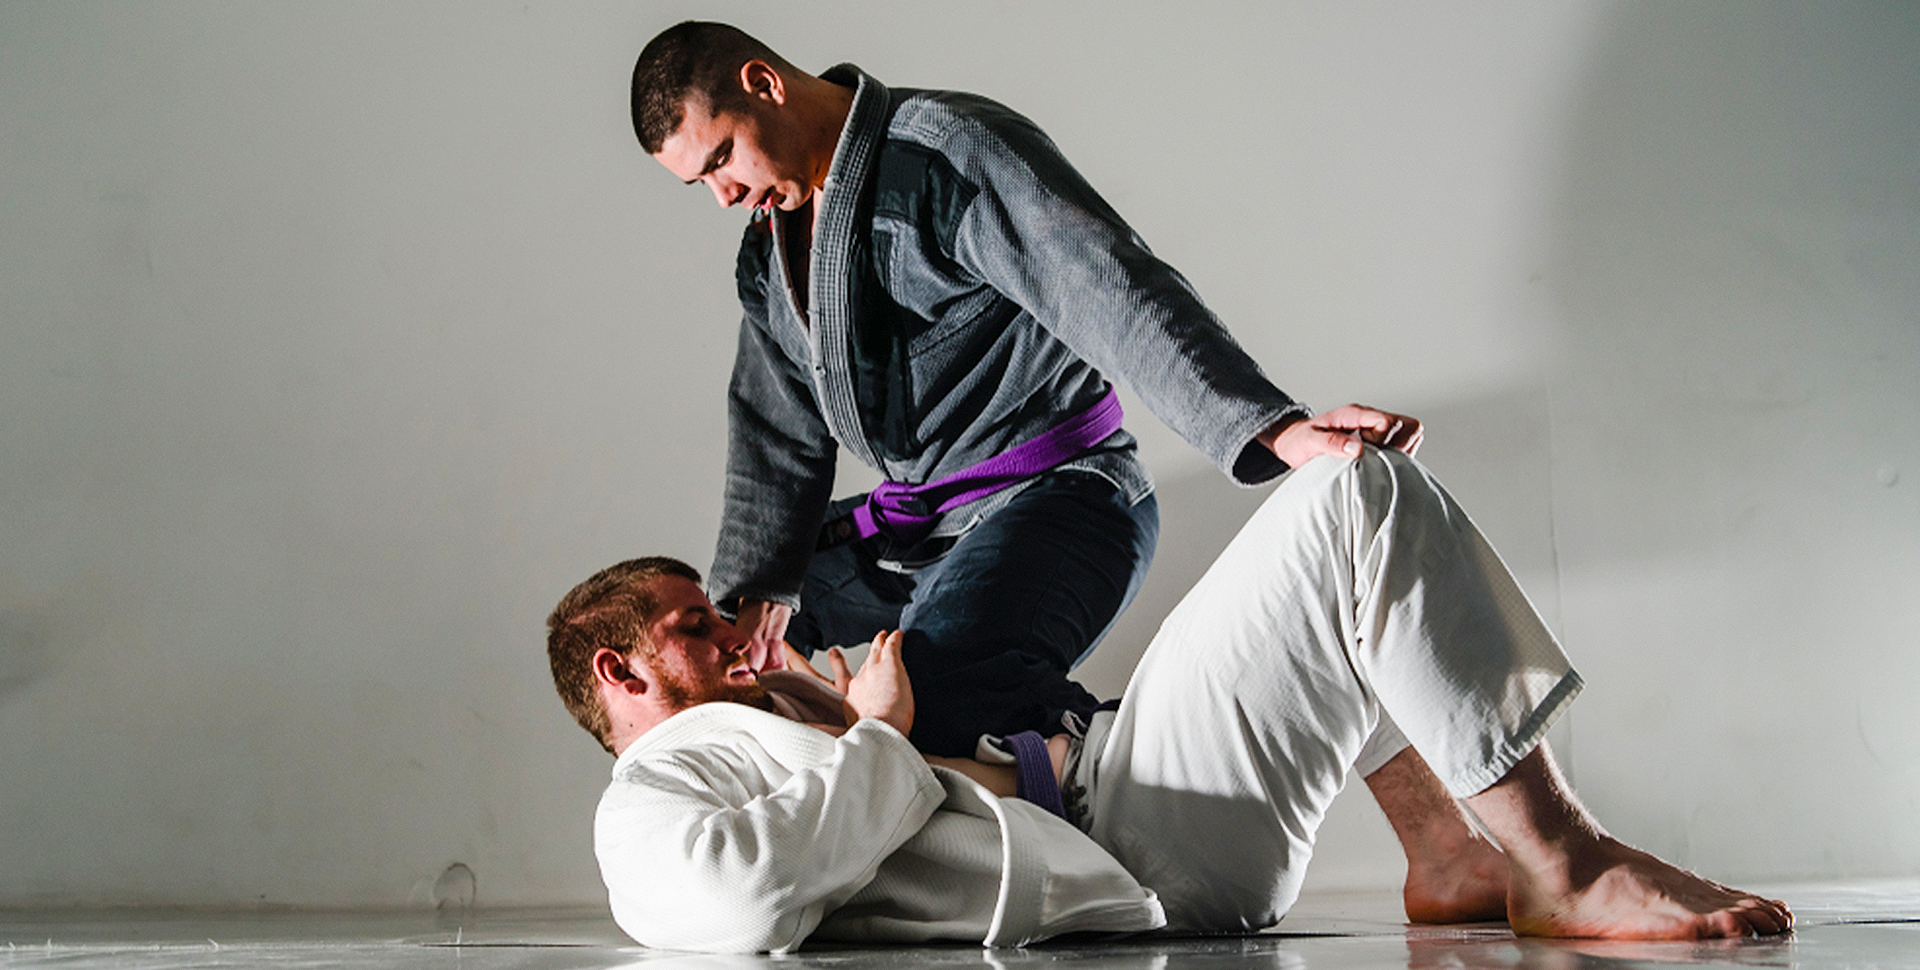 Knee Mount in BJJ: Getting, Retaining, and Escaping Knee Mounts